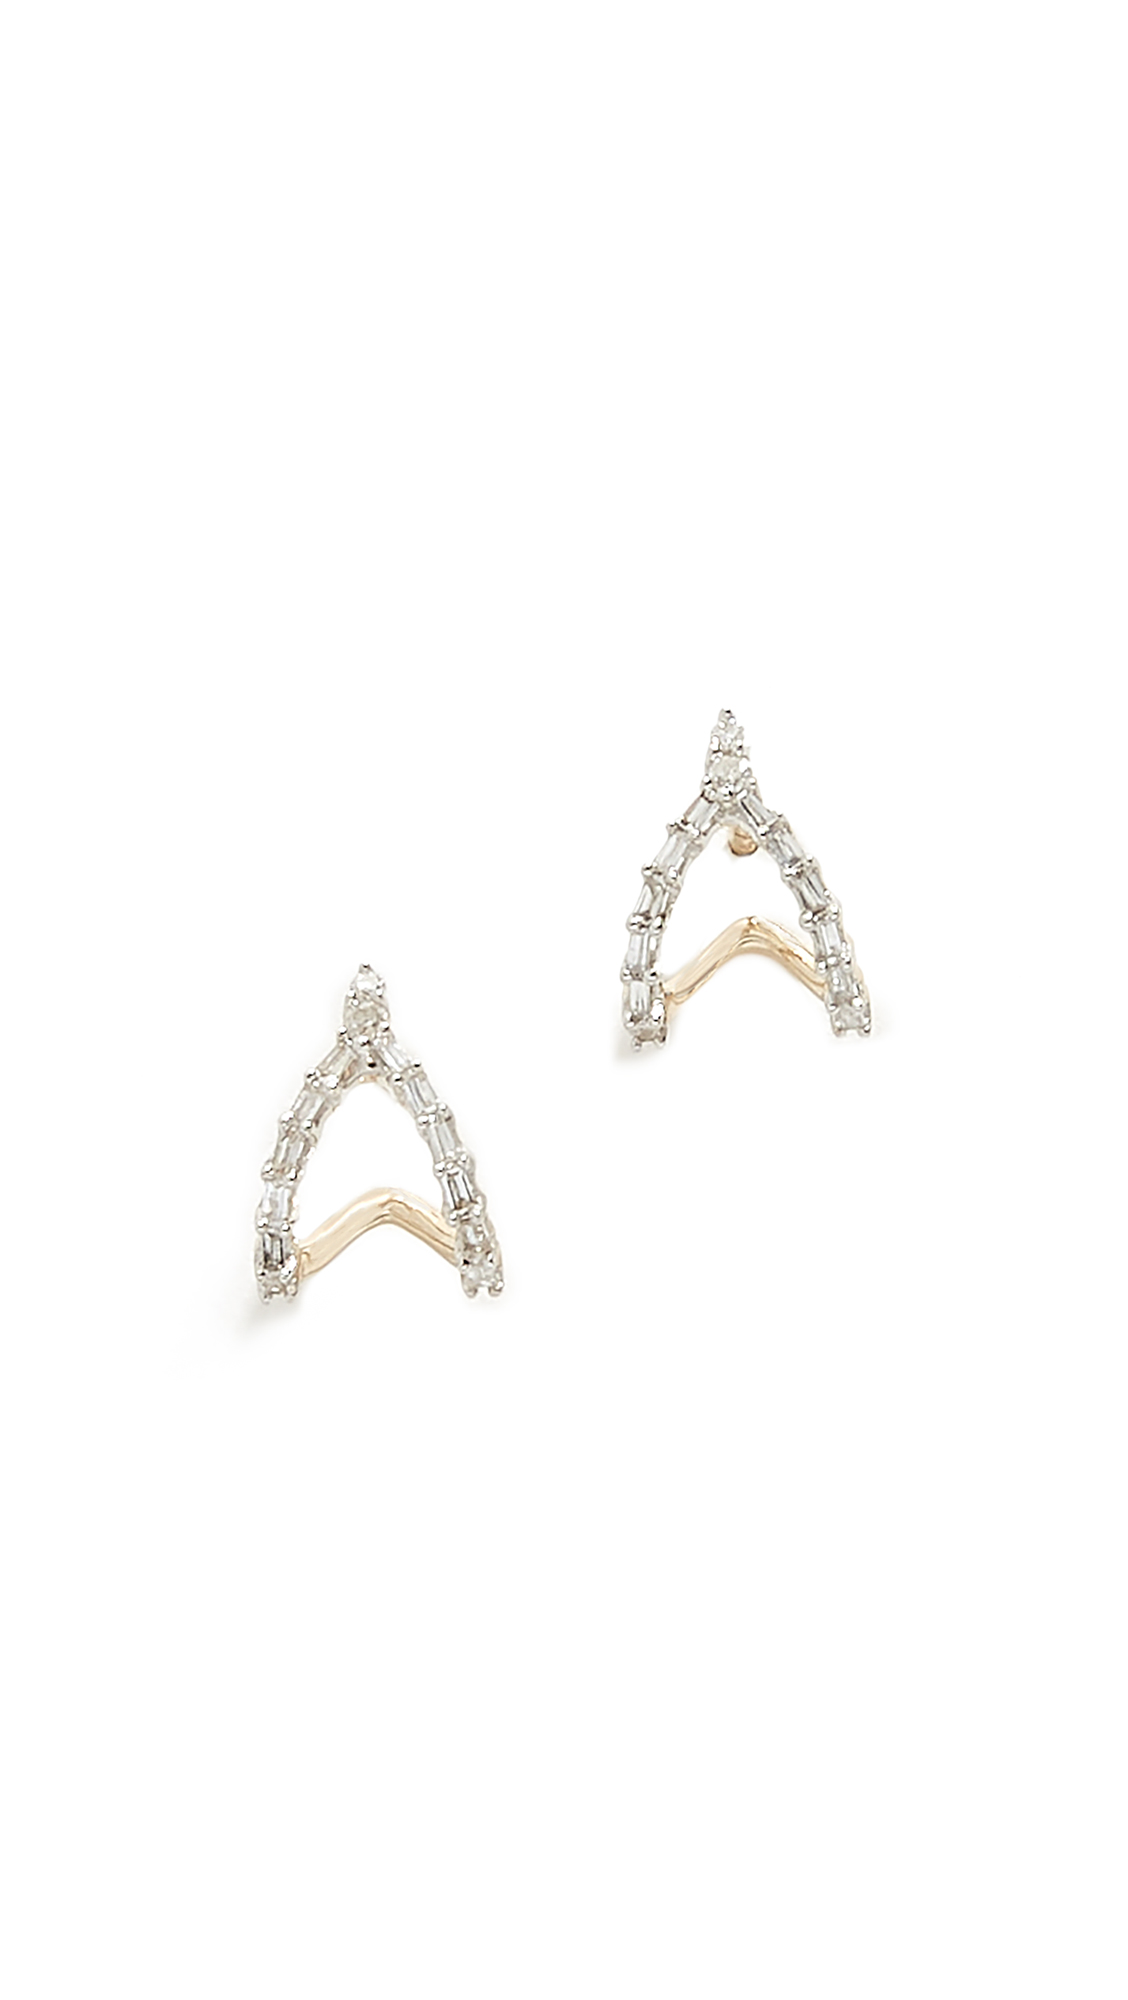 ADINA REYTER 14K BAGUETTE DOUBLE J HOOP EARRINGS